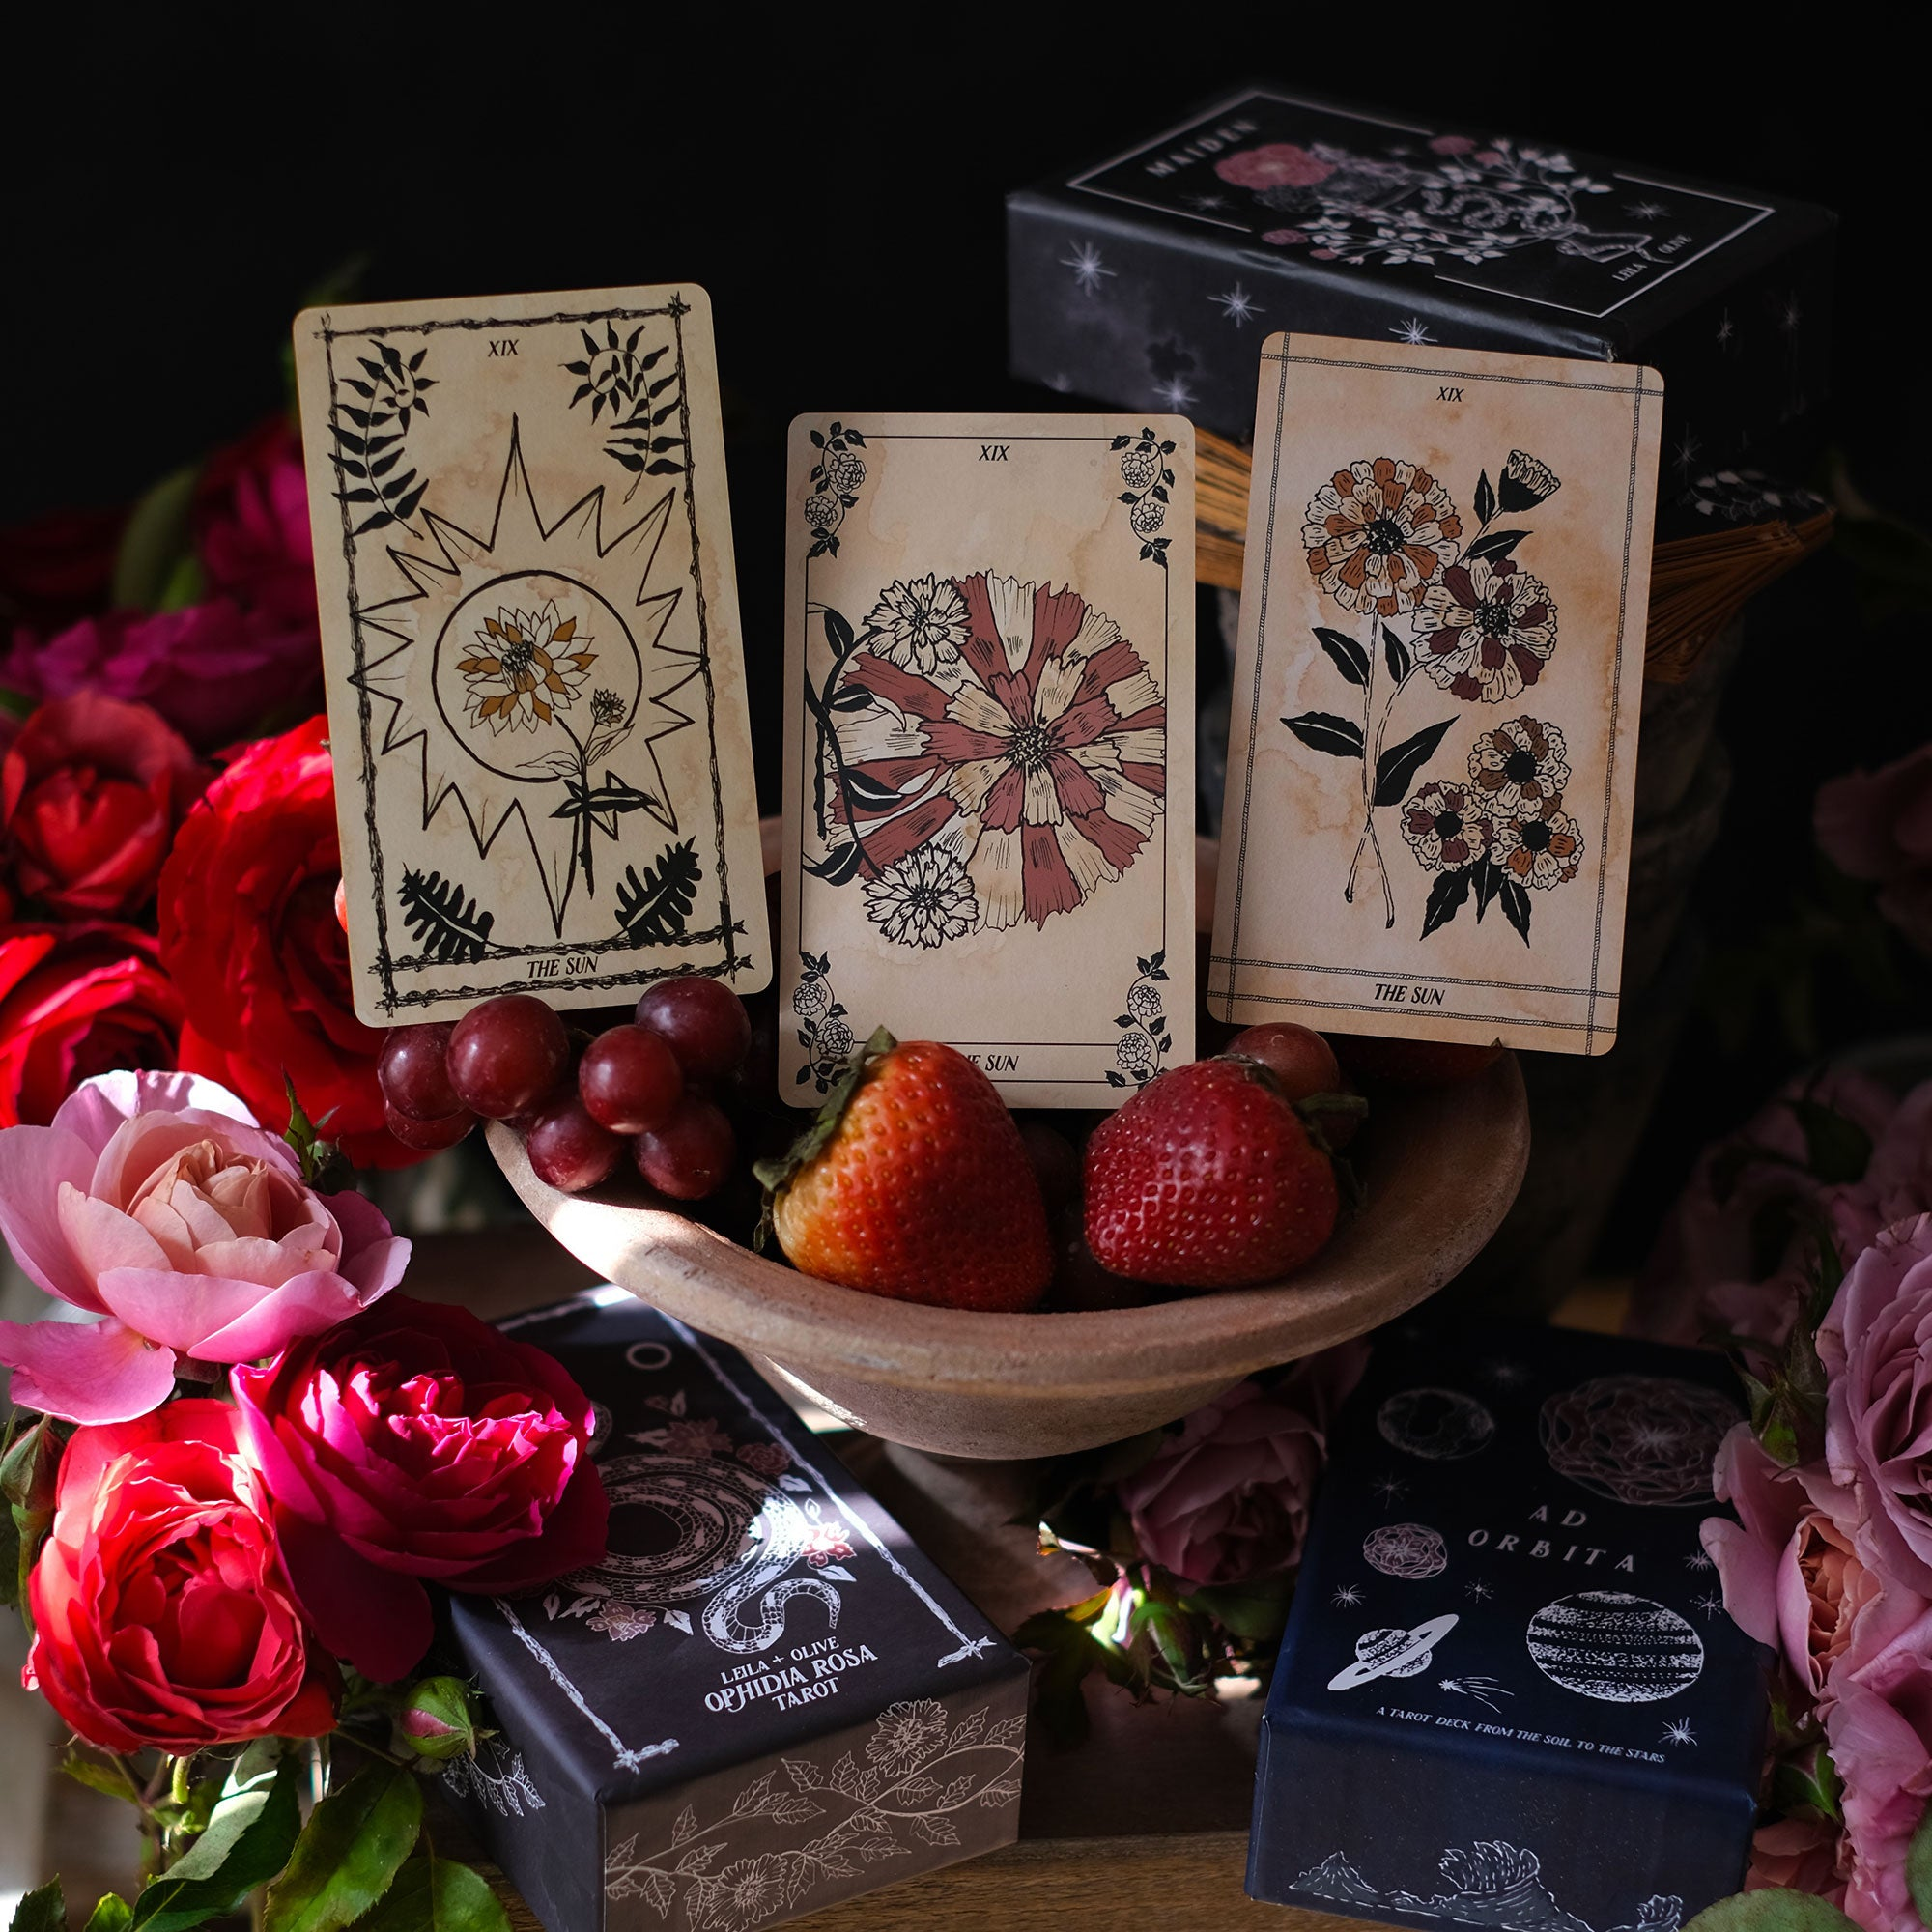 Pythia Botanica is the original Botanical Oracle deck, illustrated by hand and rooted in Greek mythology and plant magic. Read these cards in traditional Tarot spreads and allow the spirit of these plants to guide you.